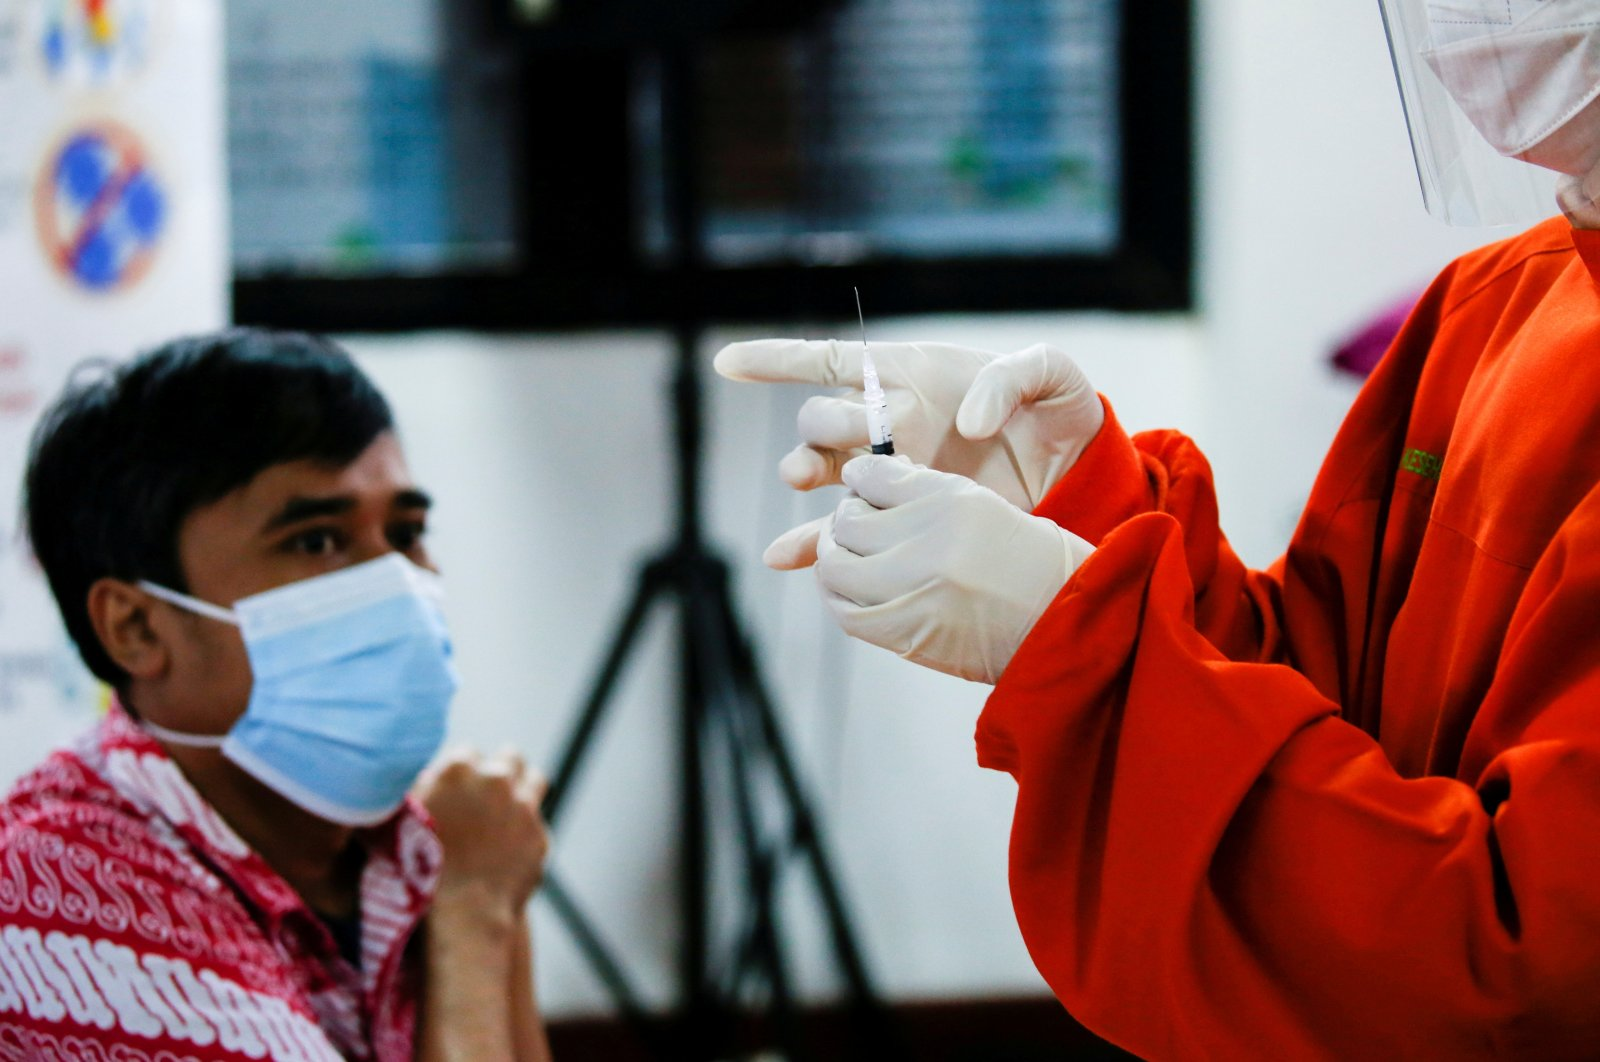 A health care worker prepares to administer a dose of the Sinovac vaccine at a district health facility in Jakarta, Indonesia, Jan. 14, 2021. (Reuters Photo)